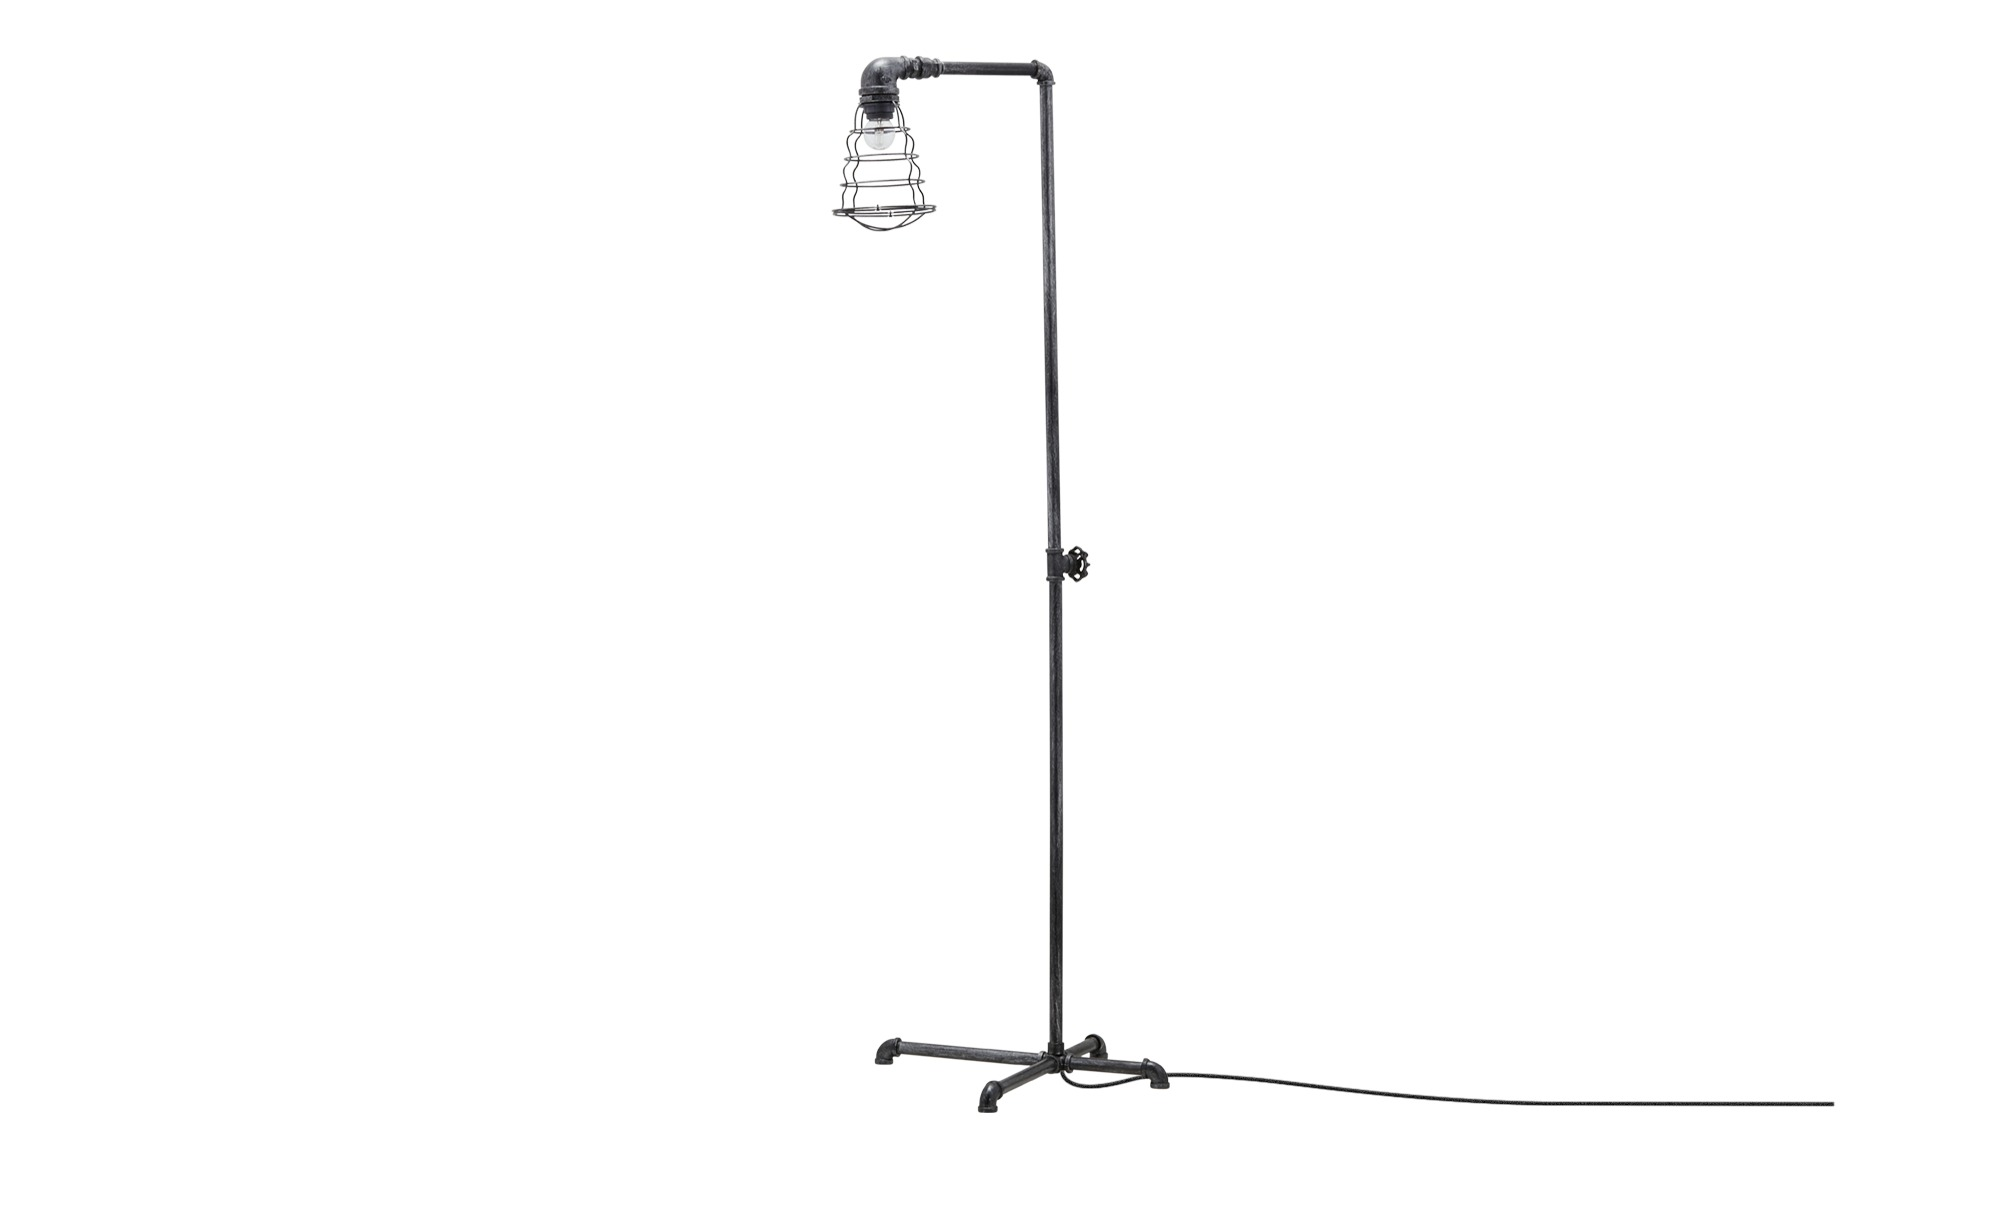 Industrie Stehlampe Caseconrad Com